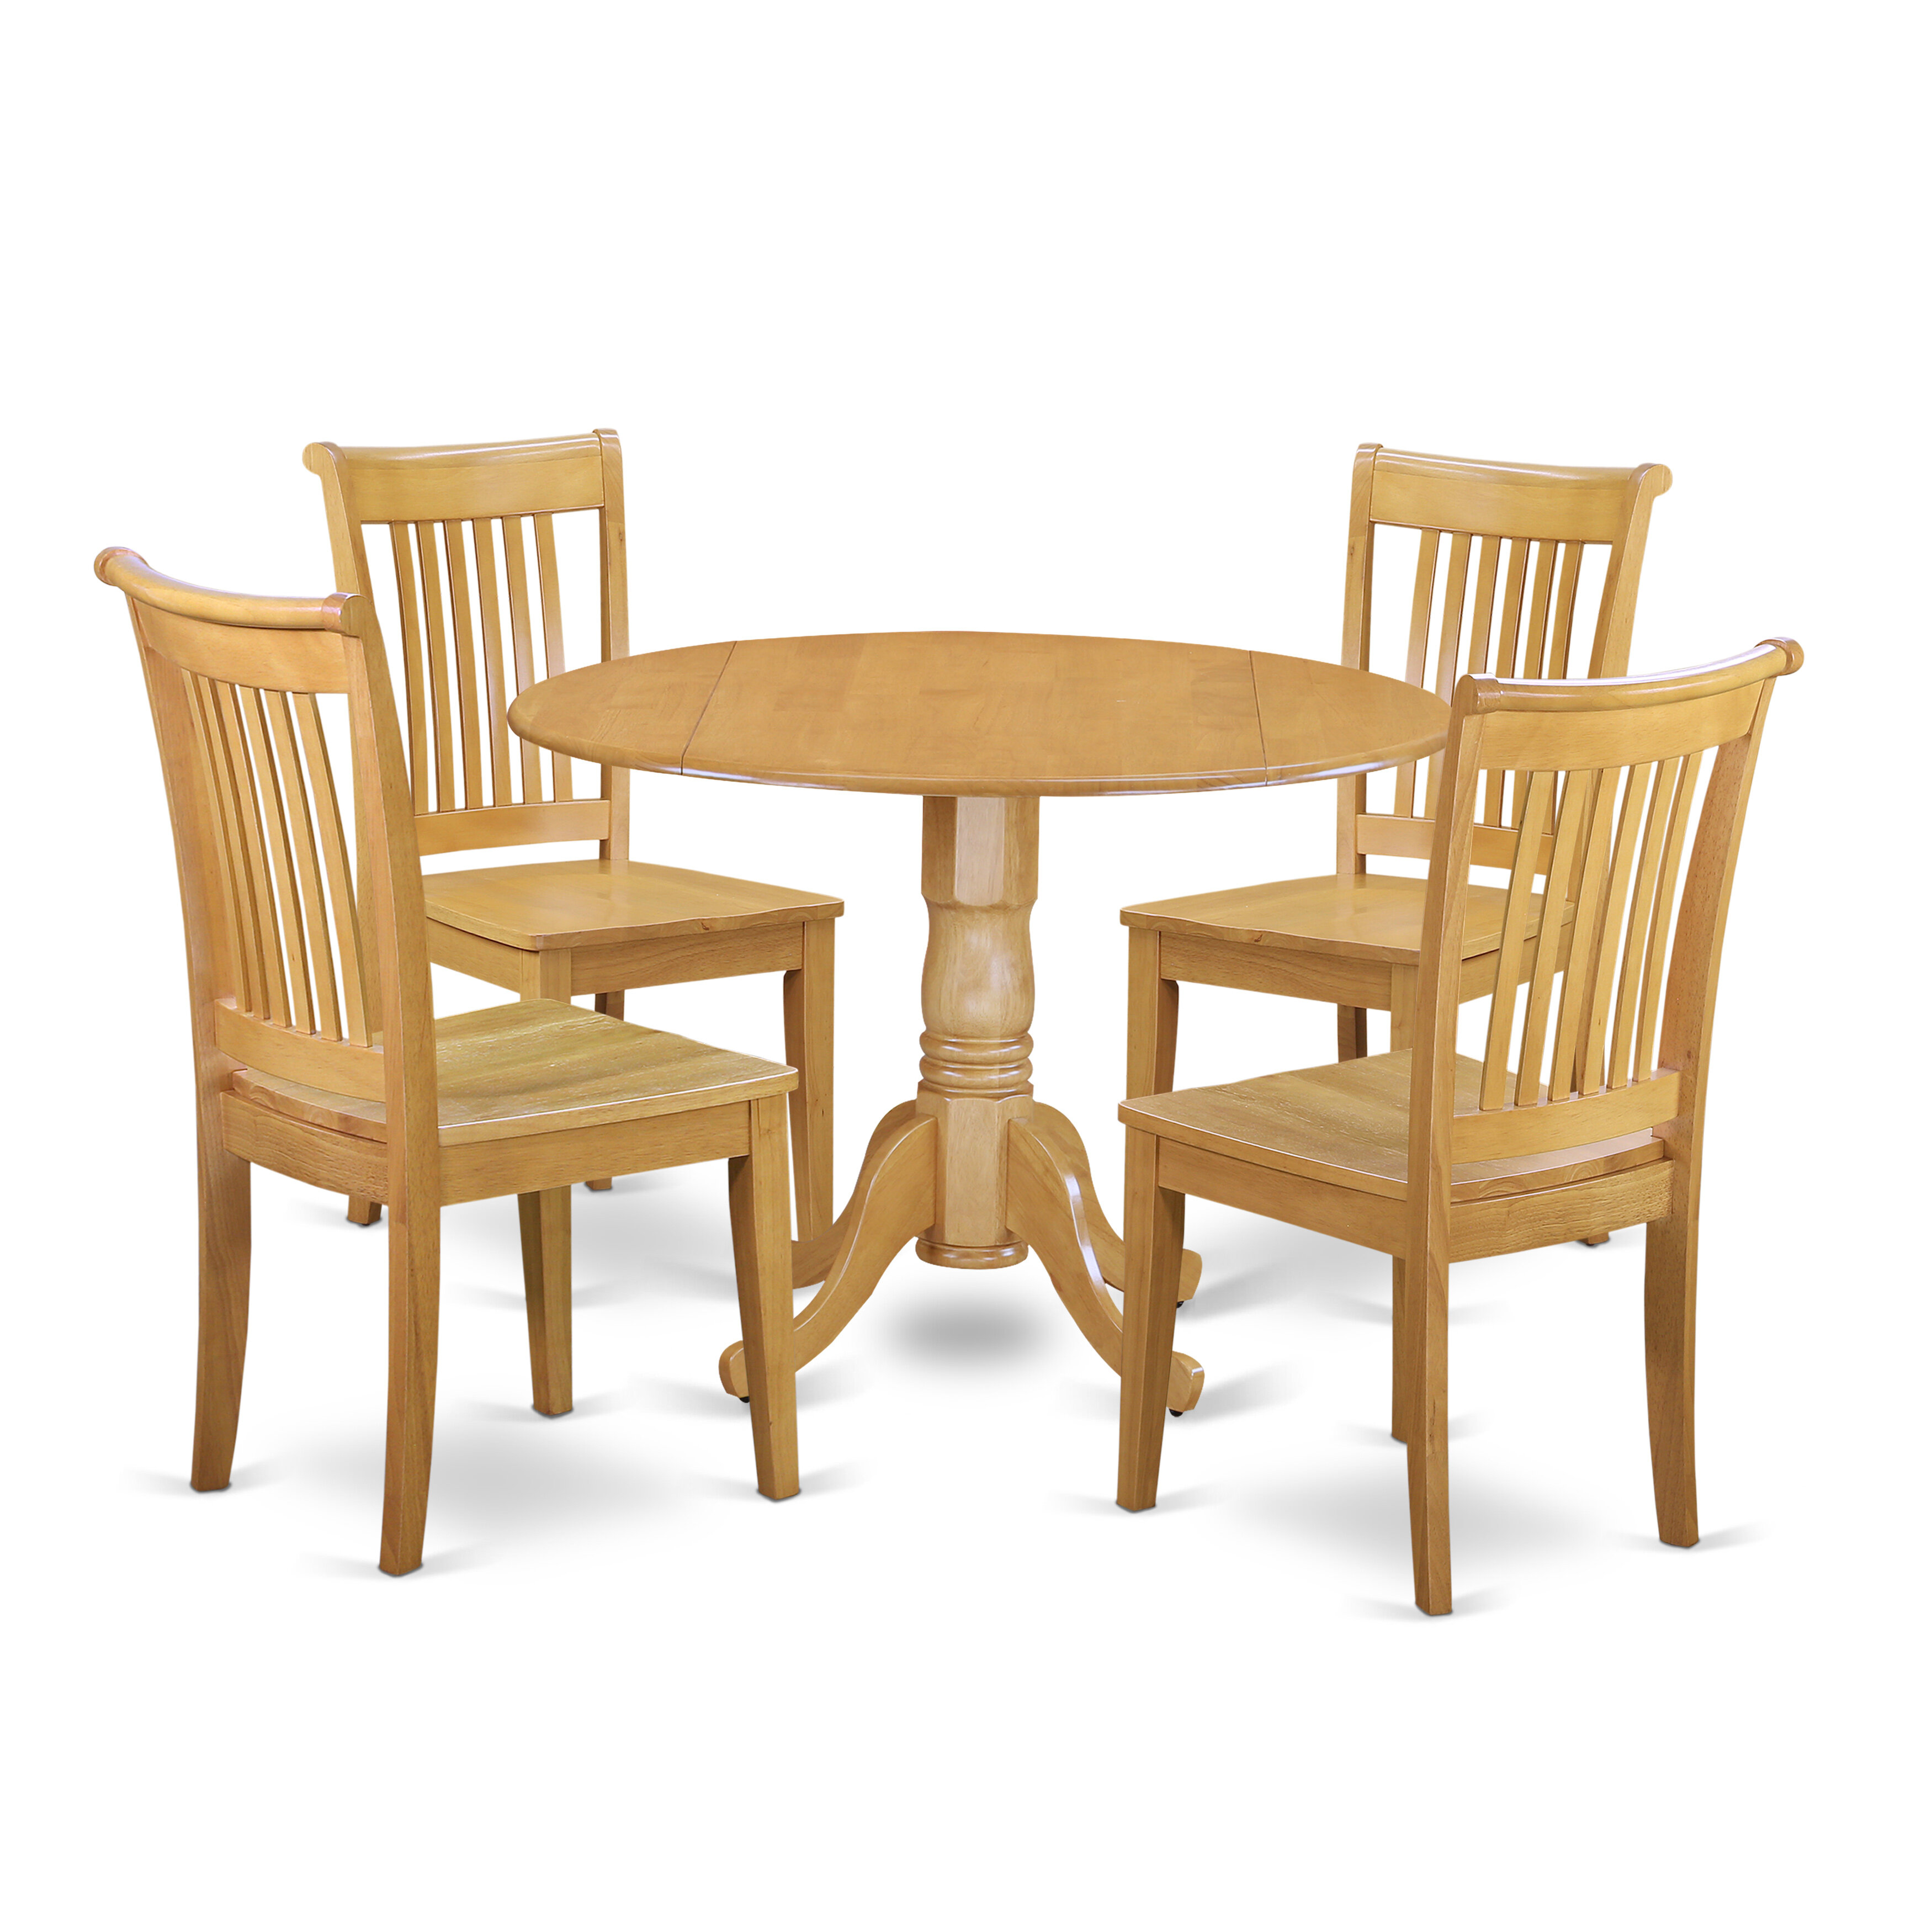 1263c340e4e8f August Grove Spruill 5 Piece Drop Leaf Breakfast Nook Solid Wood Dining Set